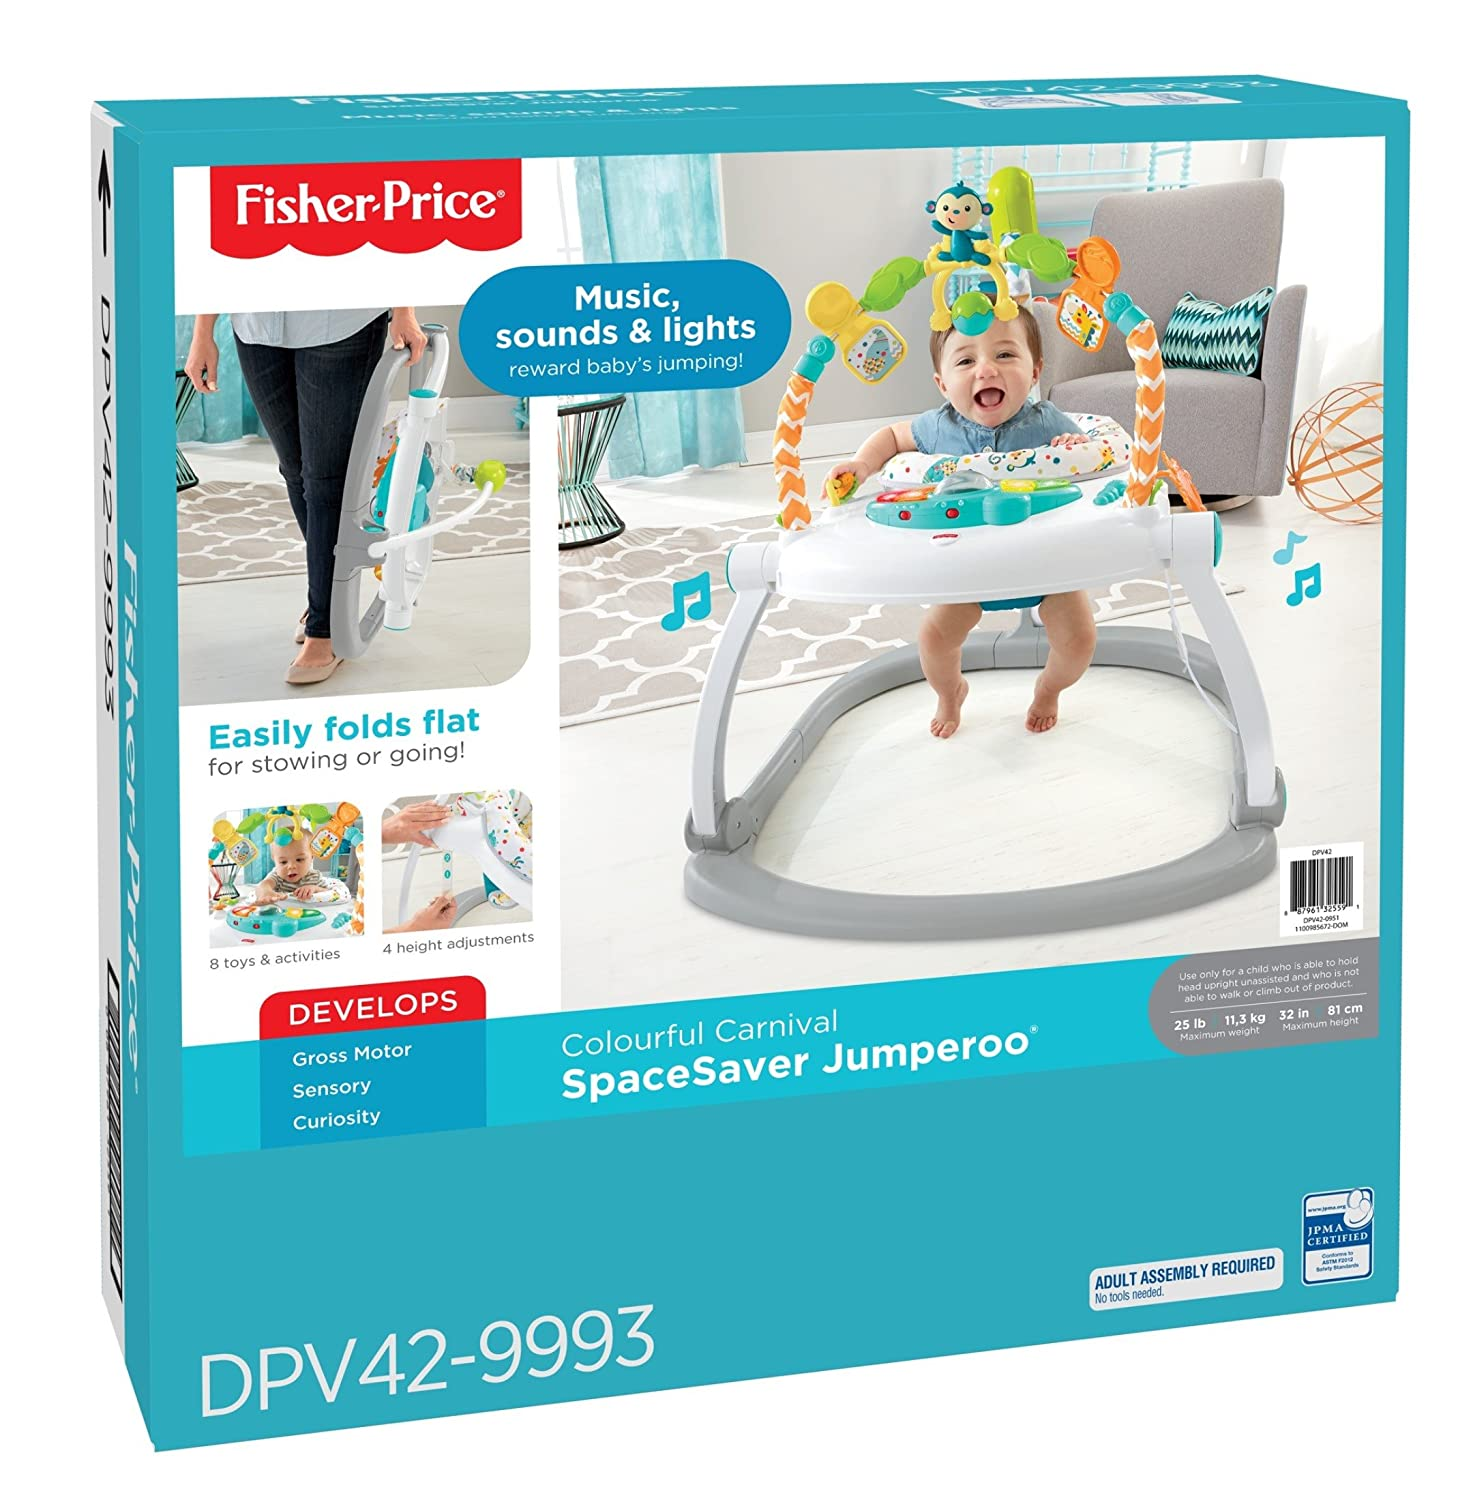 Fisher-Price Colorful Carnival SpaceSaver Jumperoo DPV42